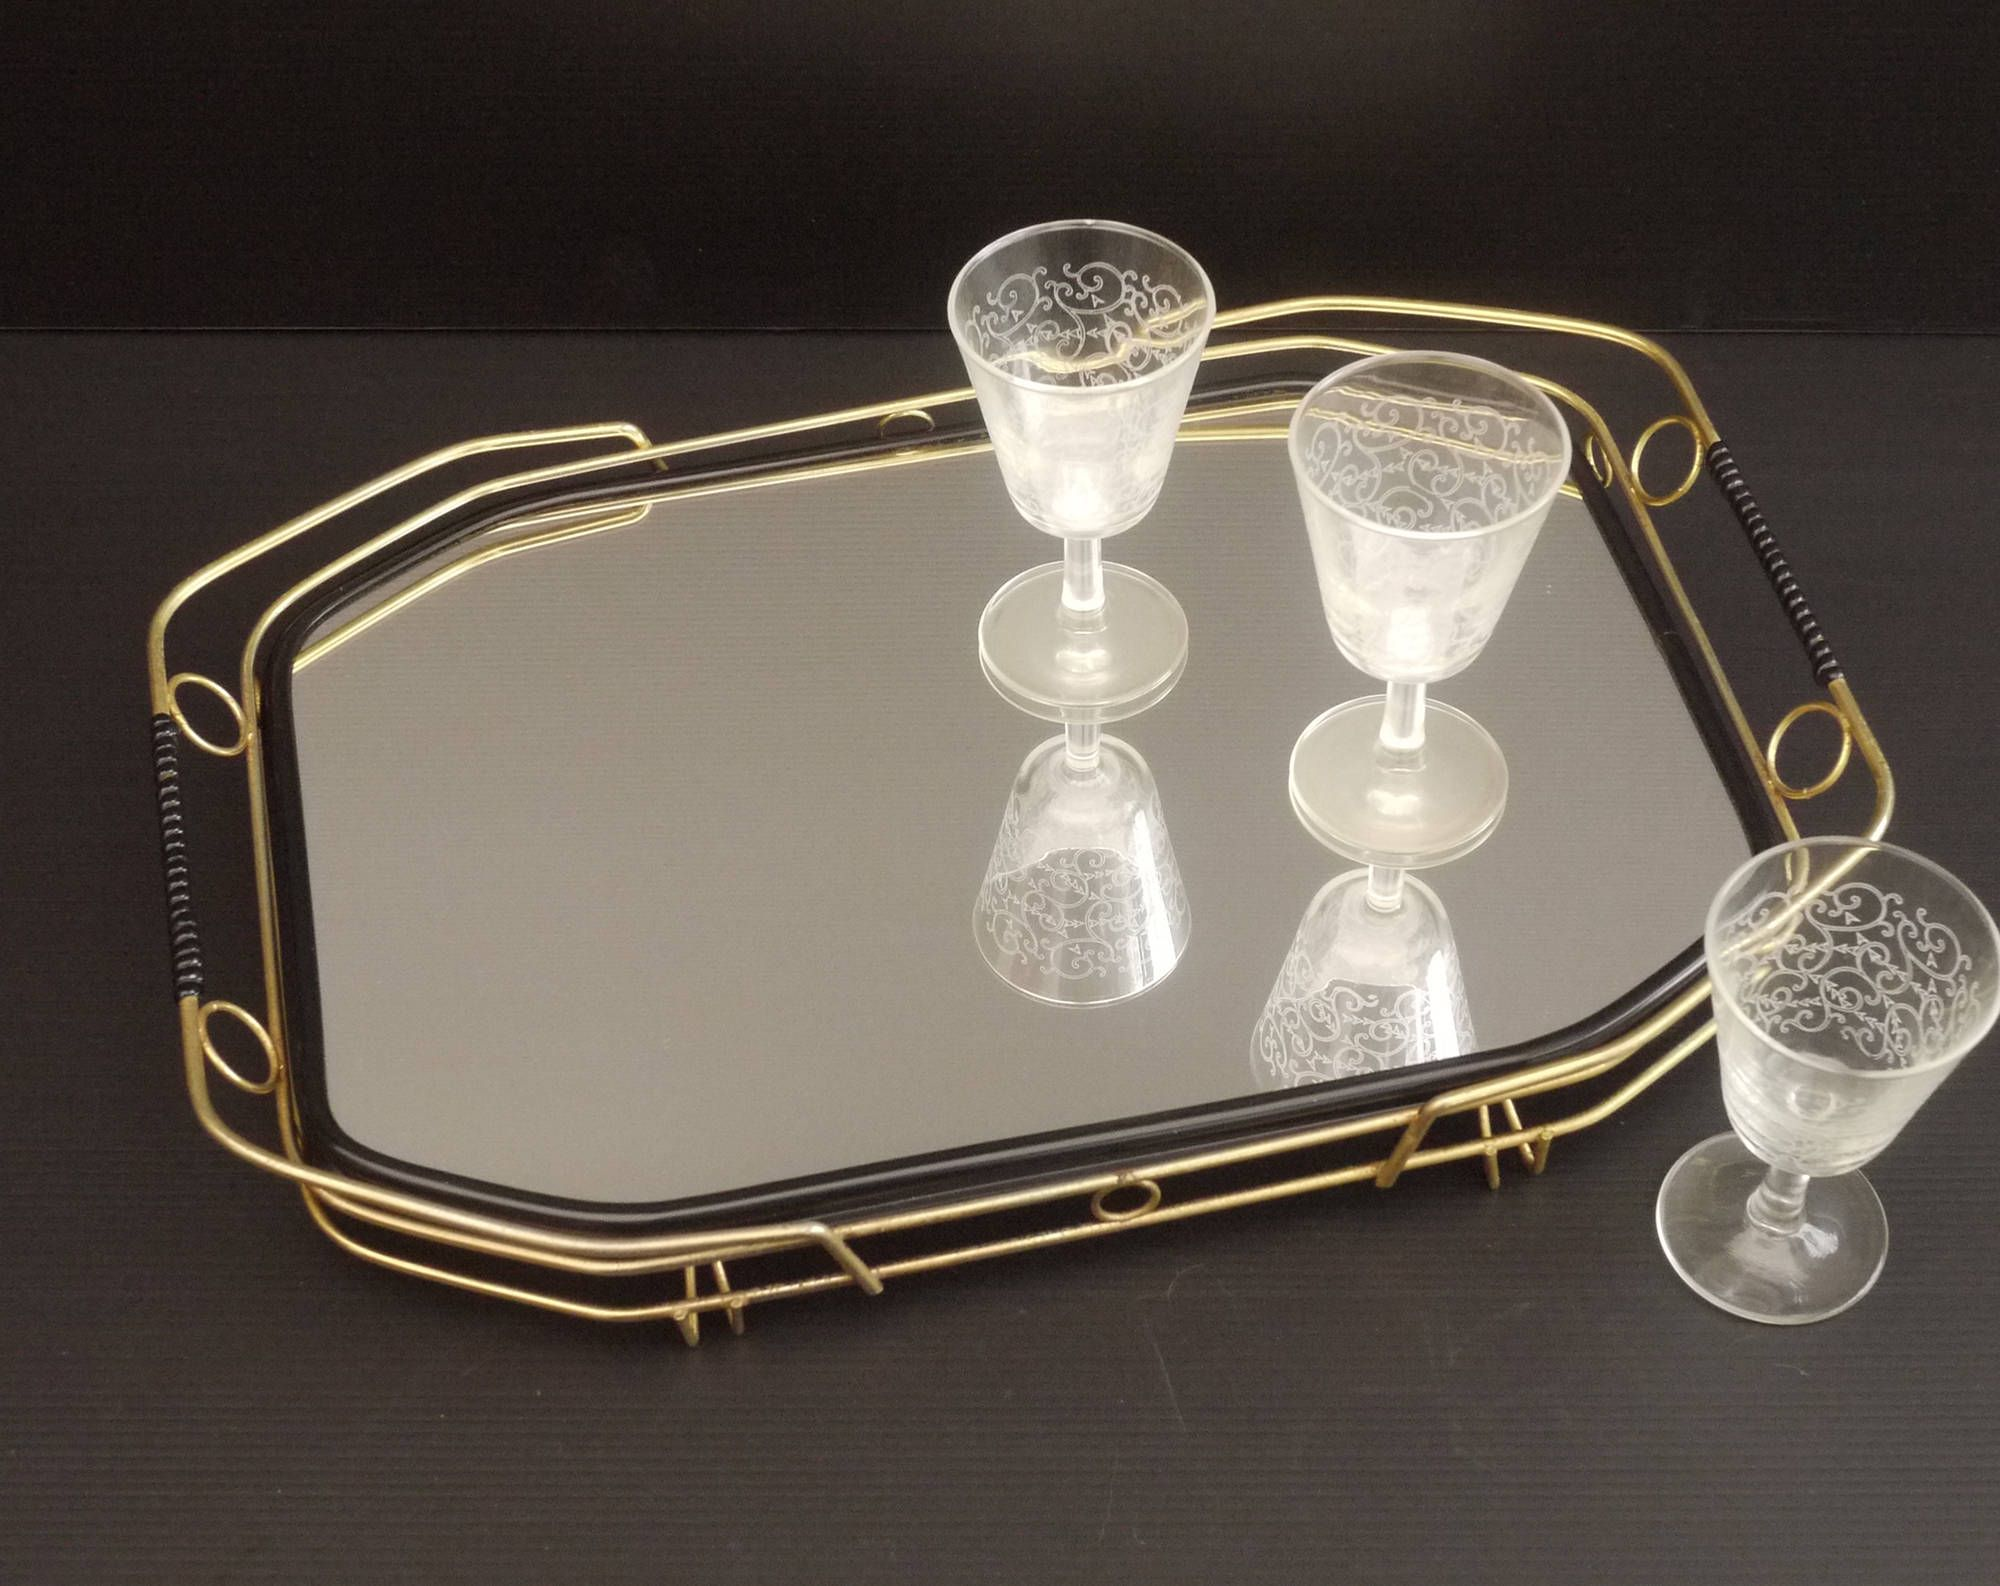 Mid Century Modern French Mirrored Serving Tray, Gold And Black Mirrored  Tabletop Tray, Cocktail